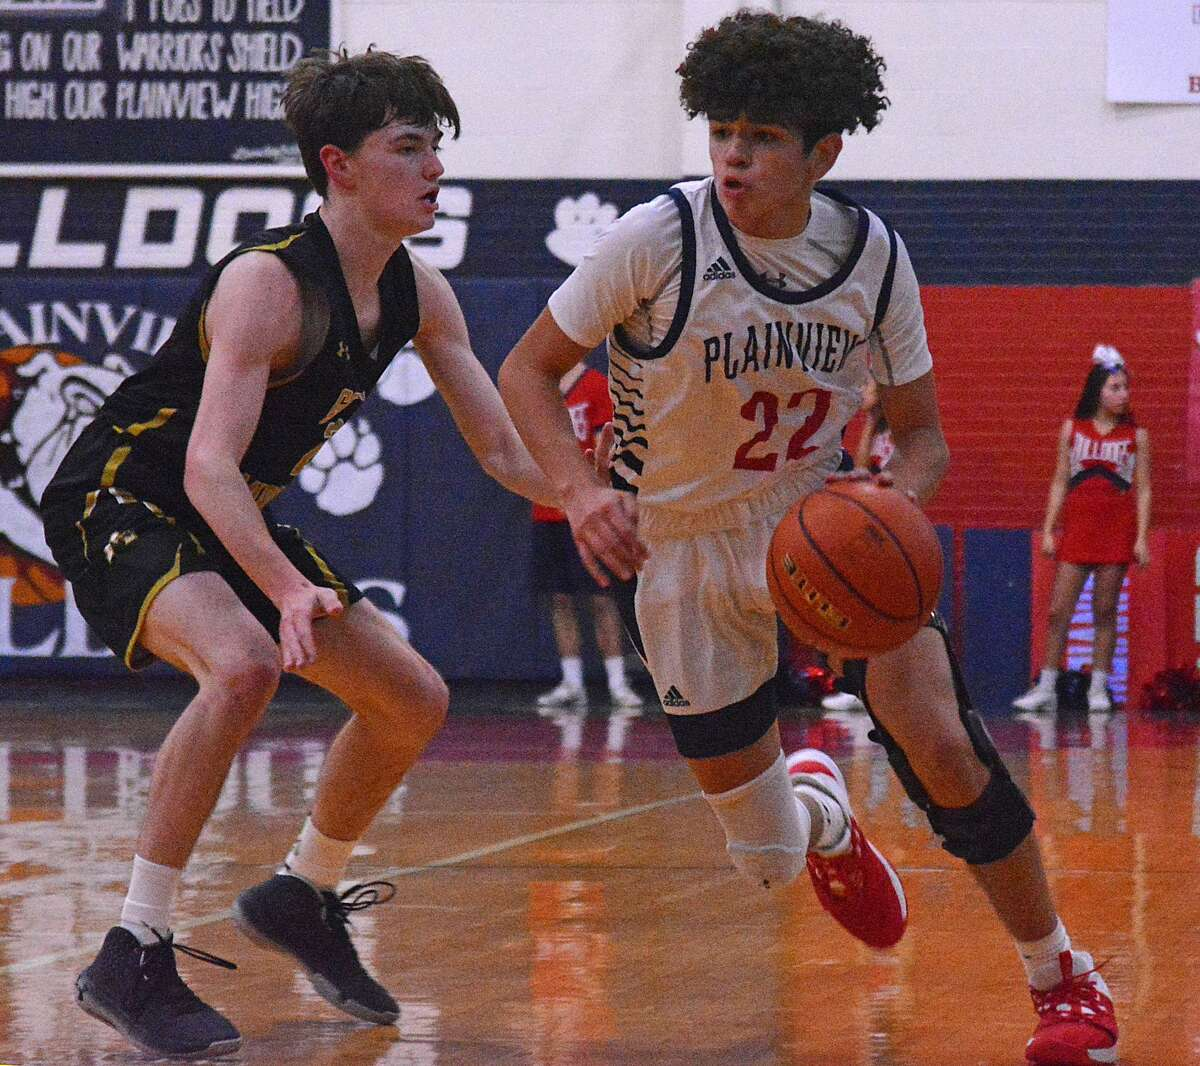 Plainview's Adolfo Martinez drives past an Amarillo defender during their District 3-5A boys basketball game on Tuesday night in the Dog House.